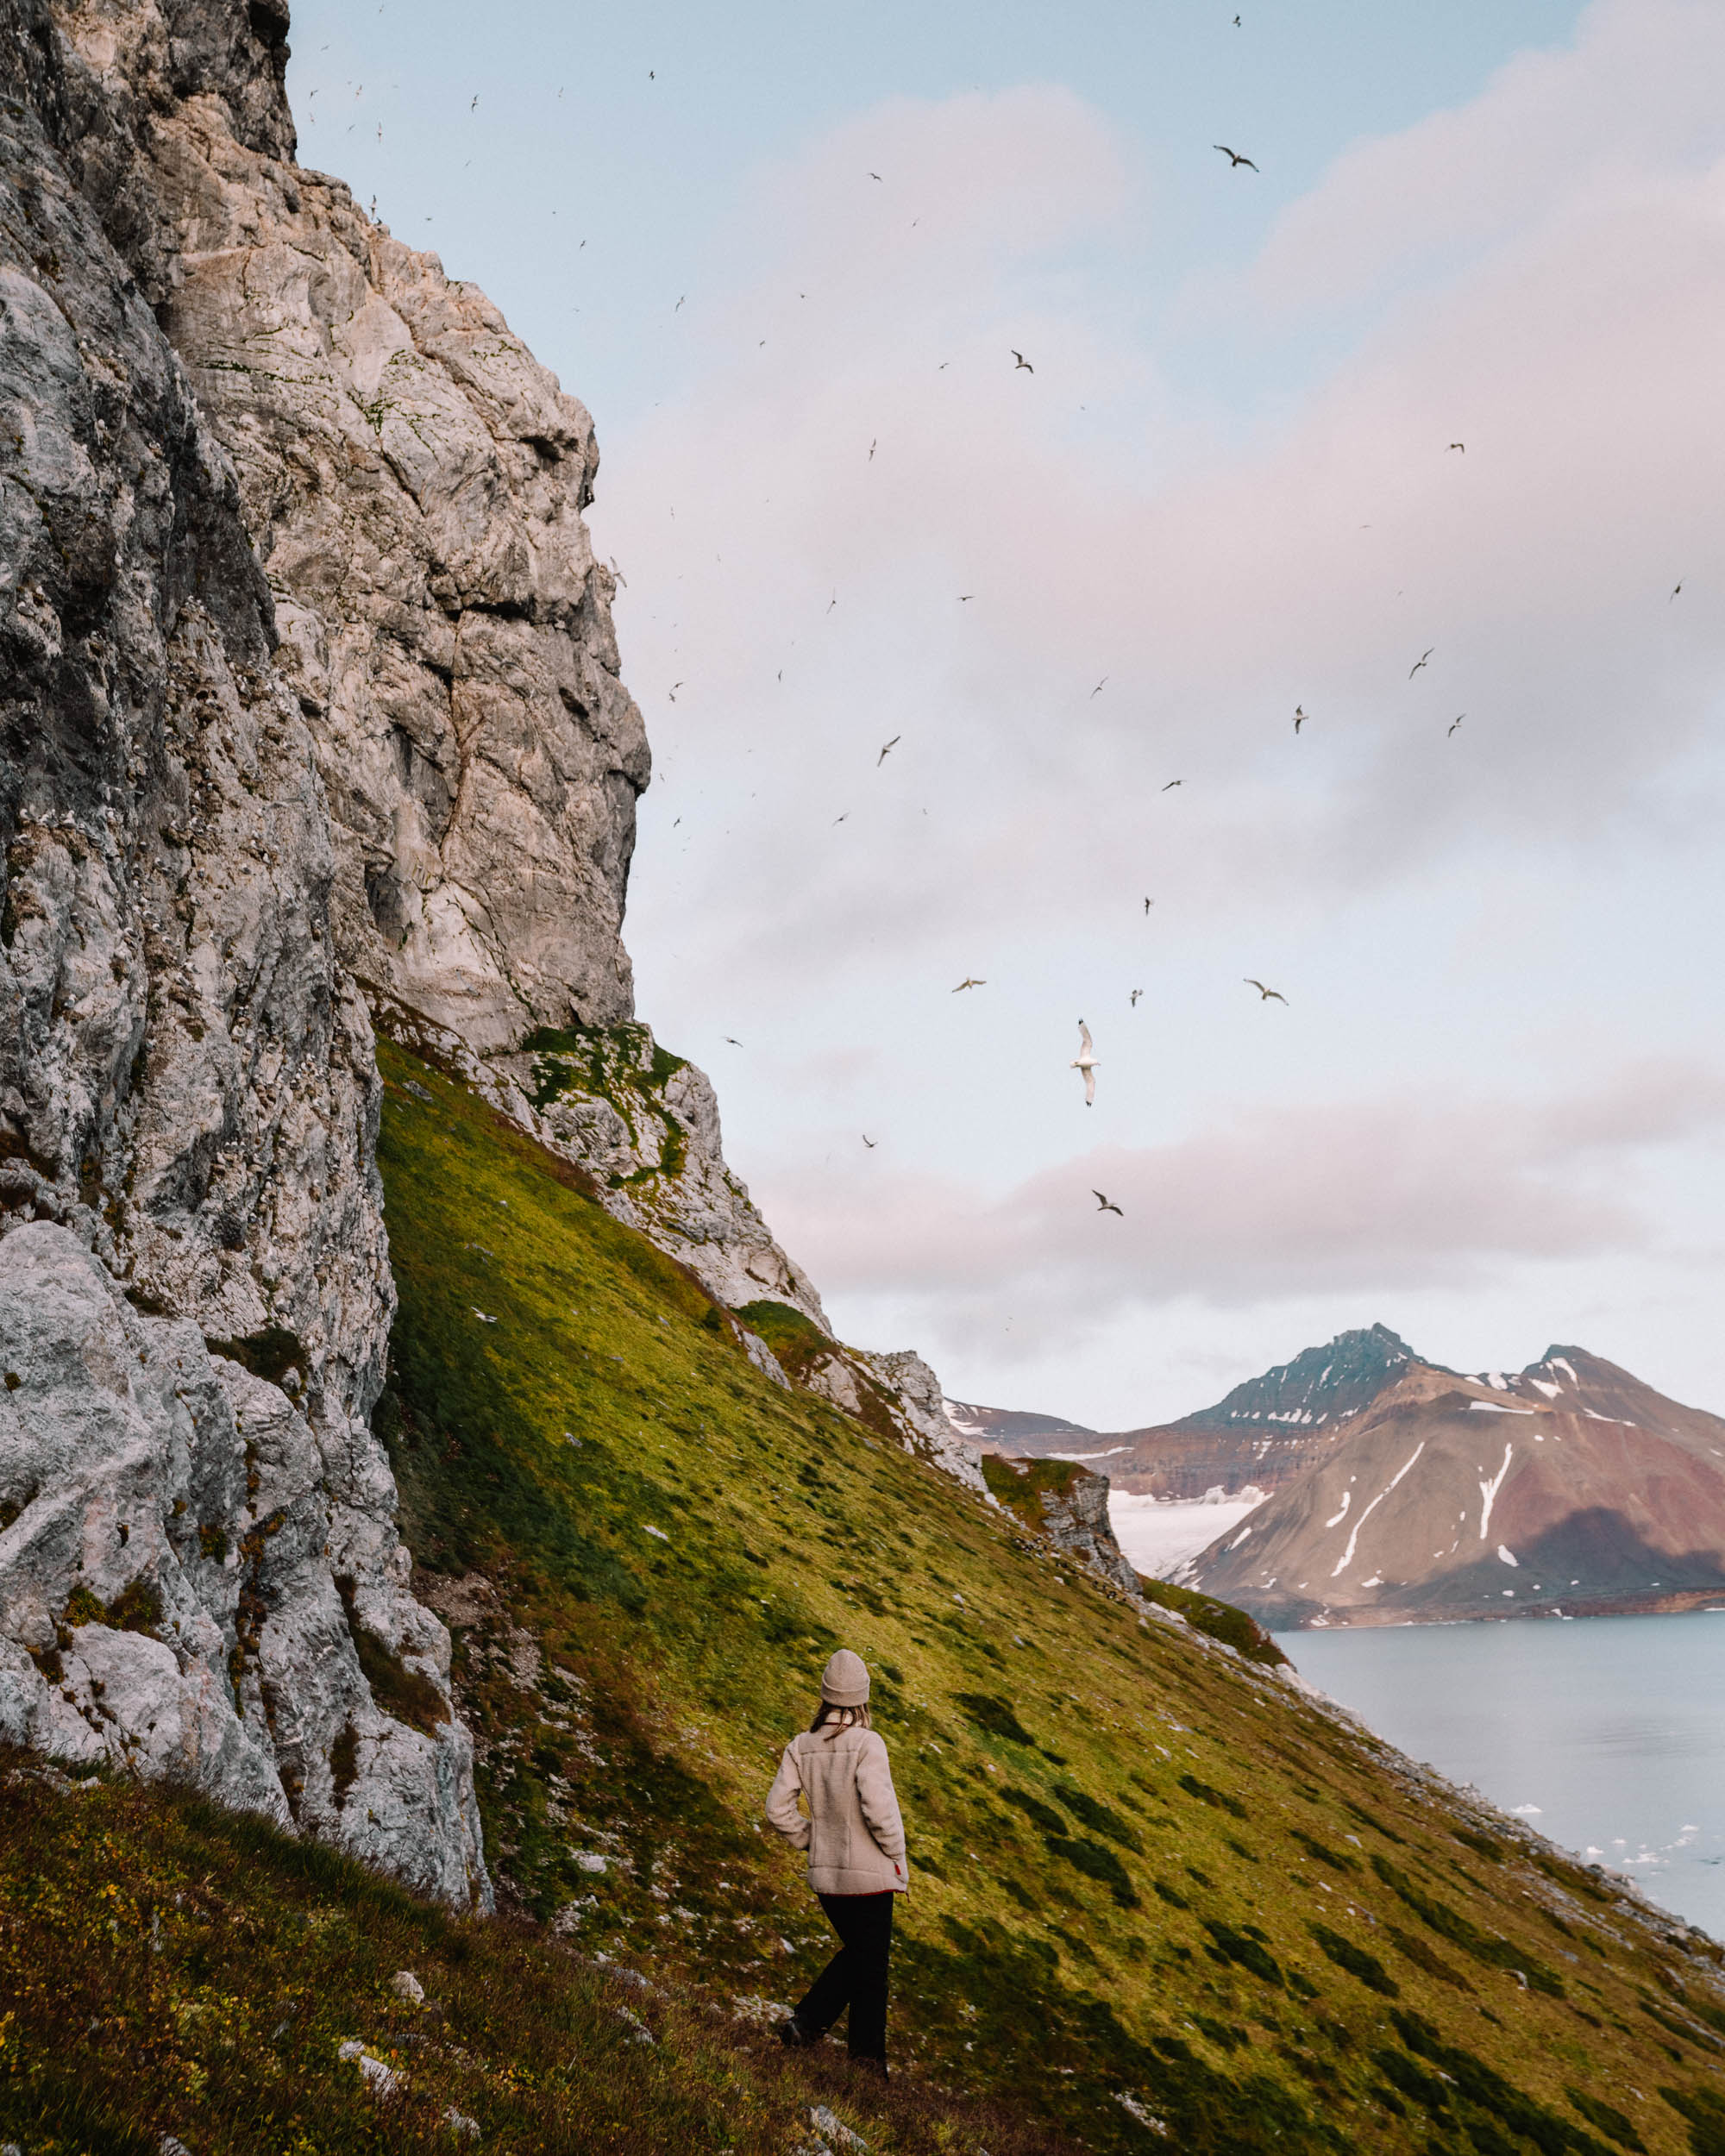 Bird cliffs in Svalbard, Spitsbergen, Norway